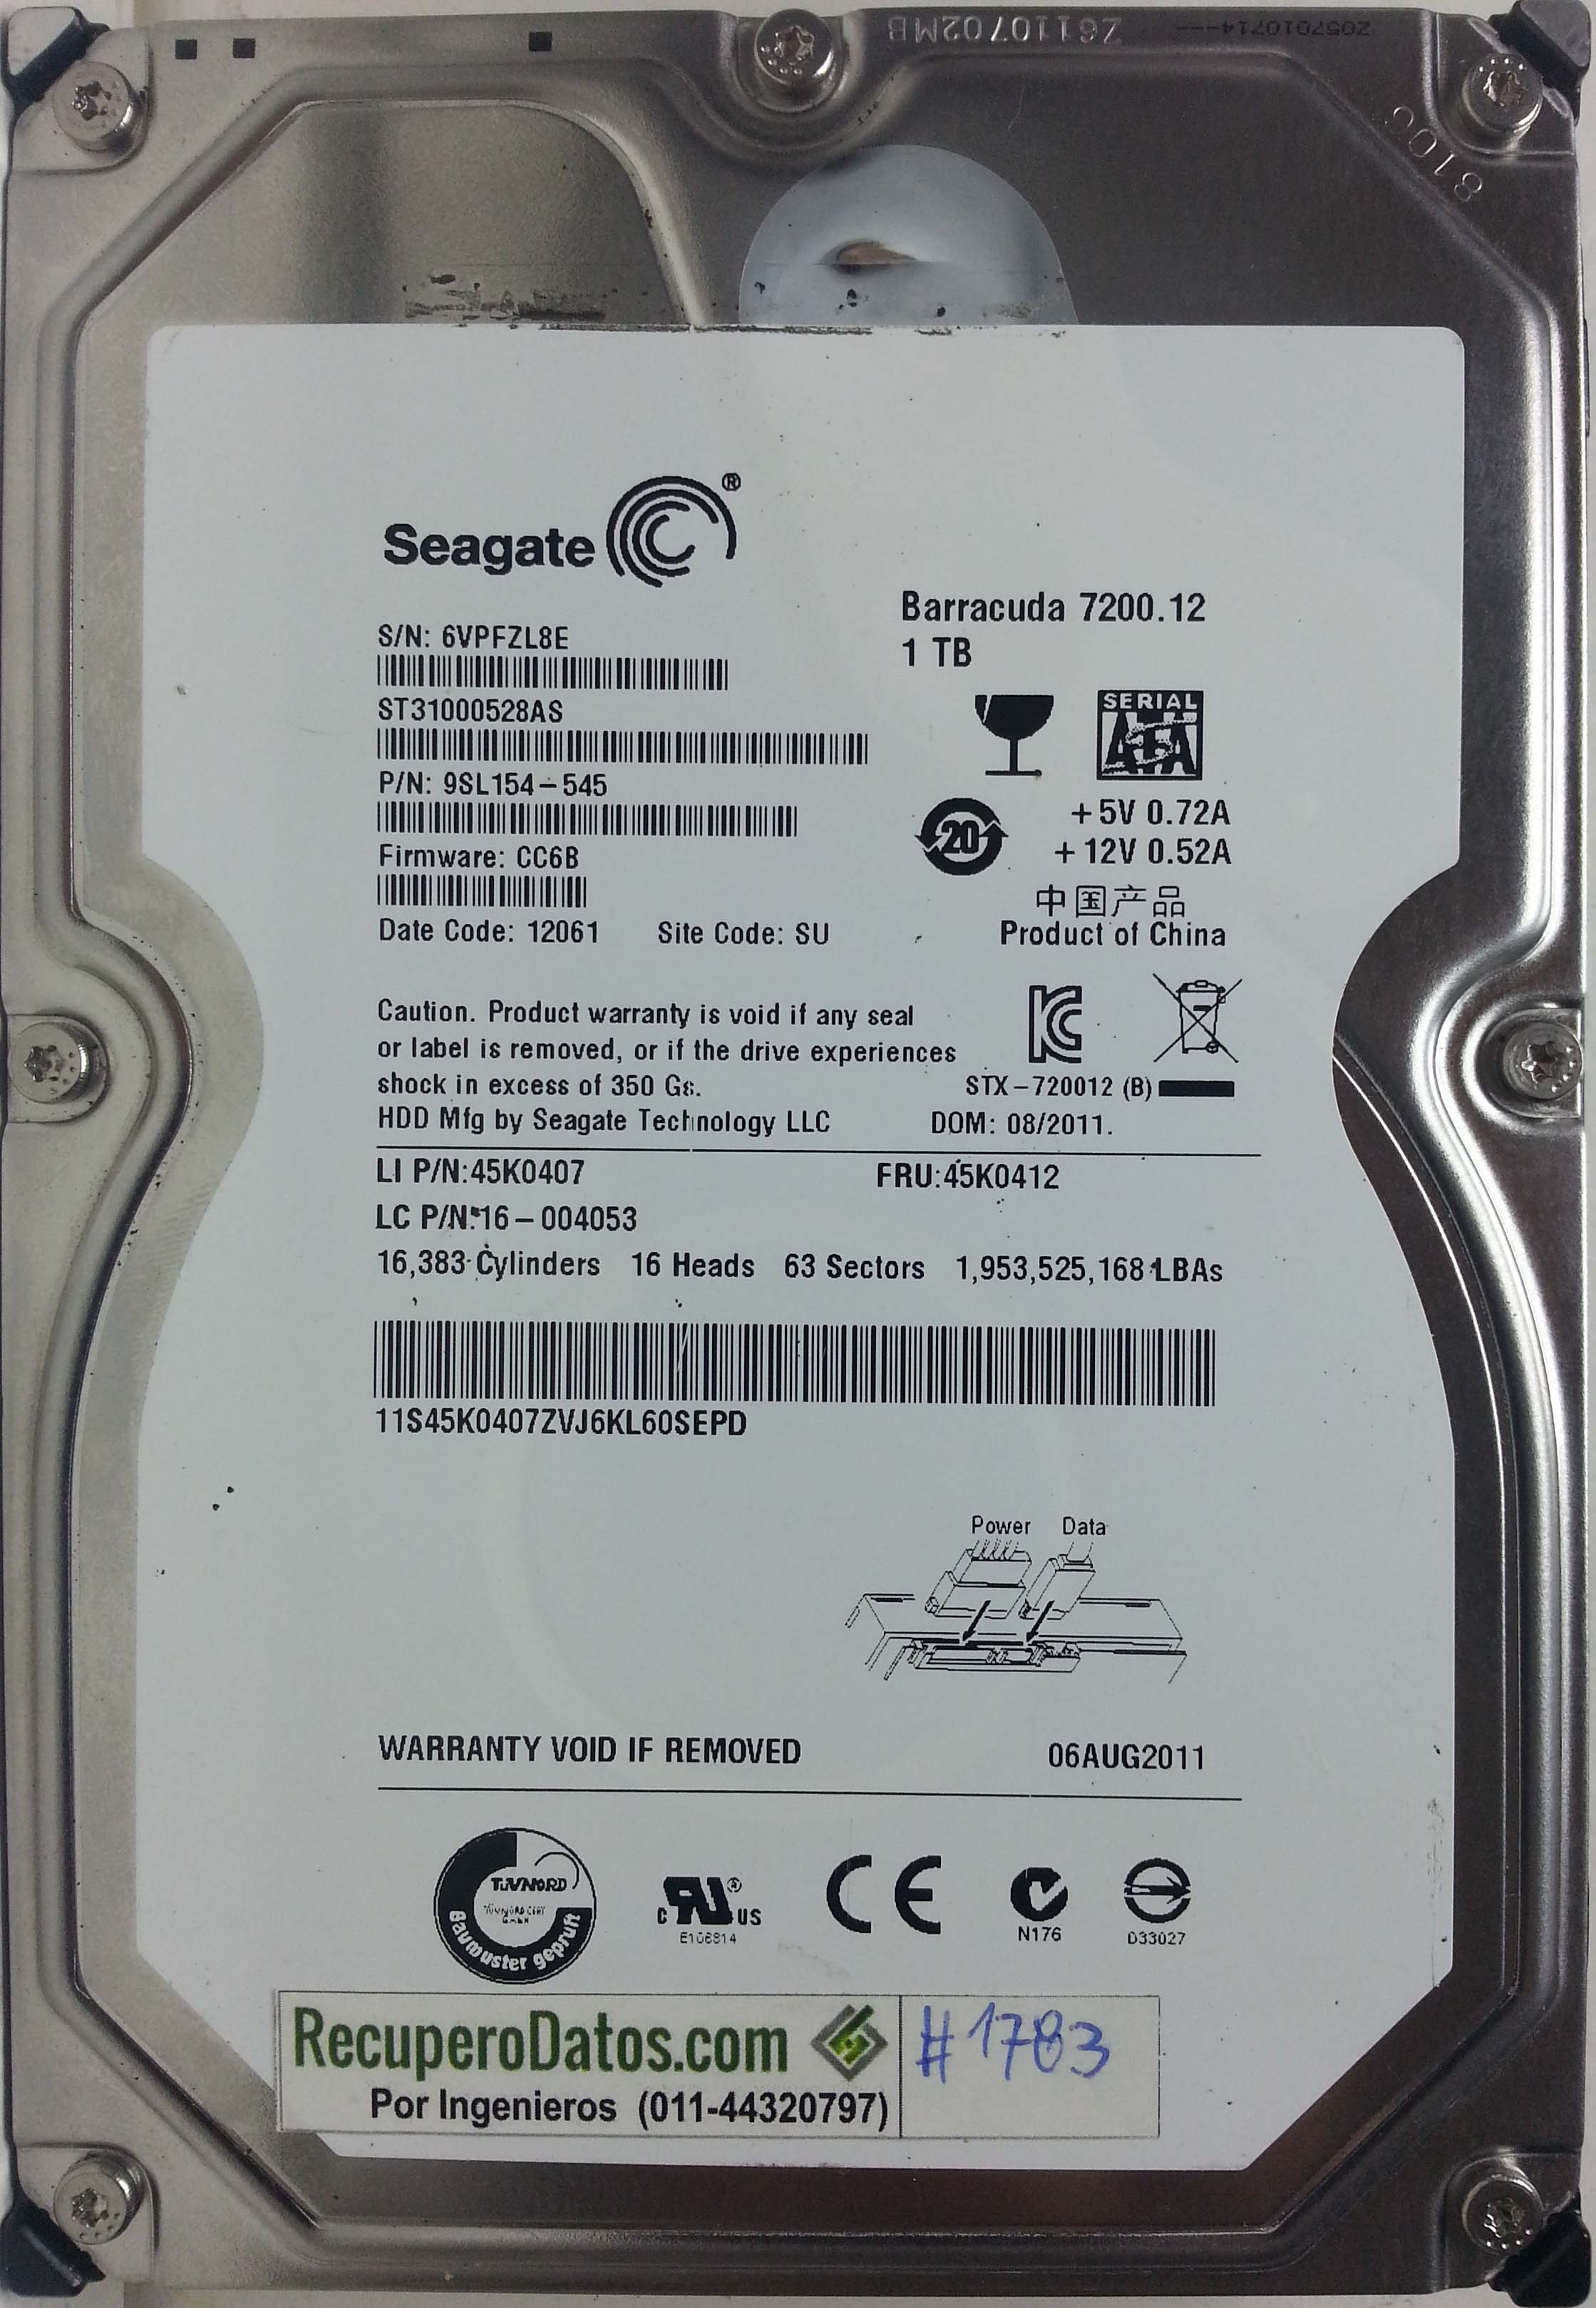 seagate-ST31000528AS